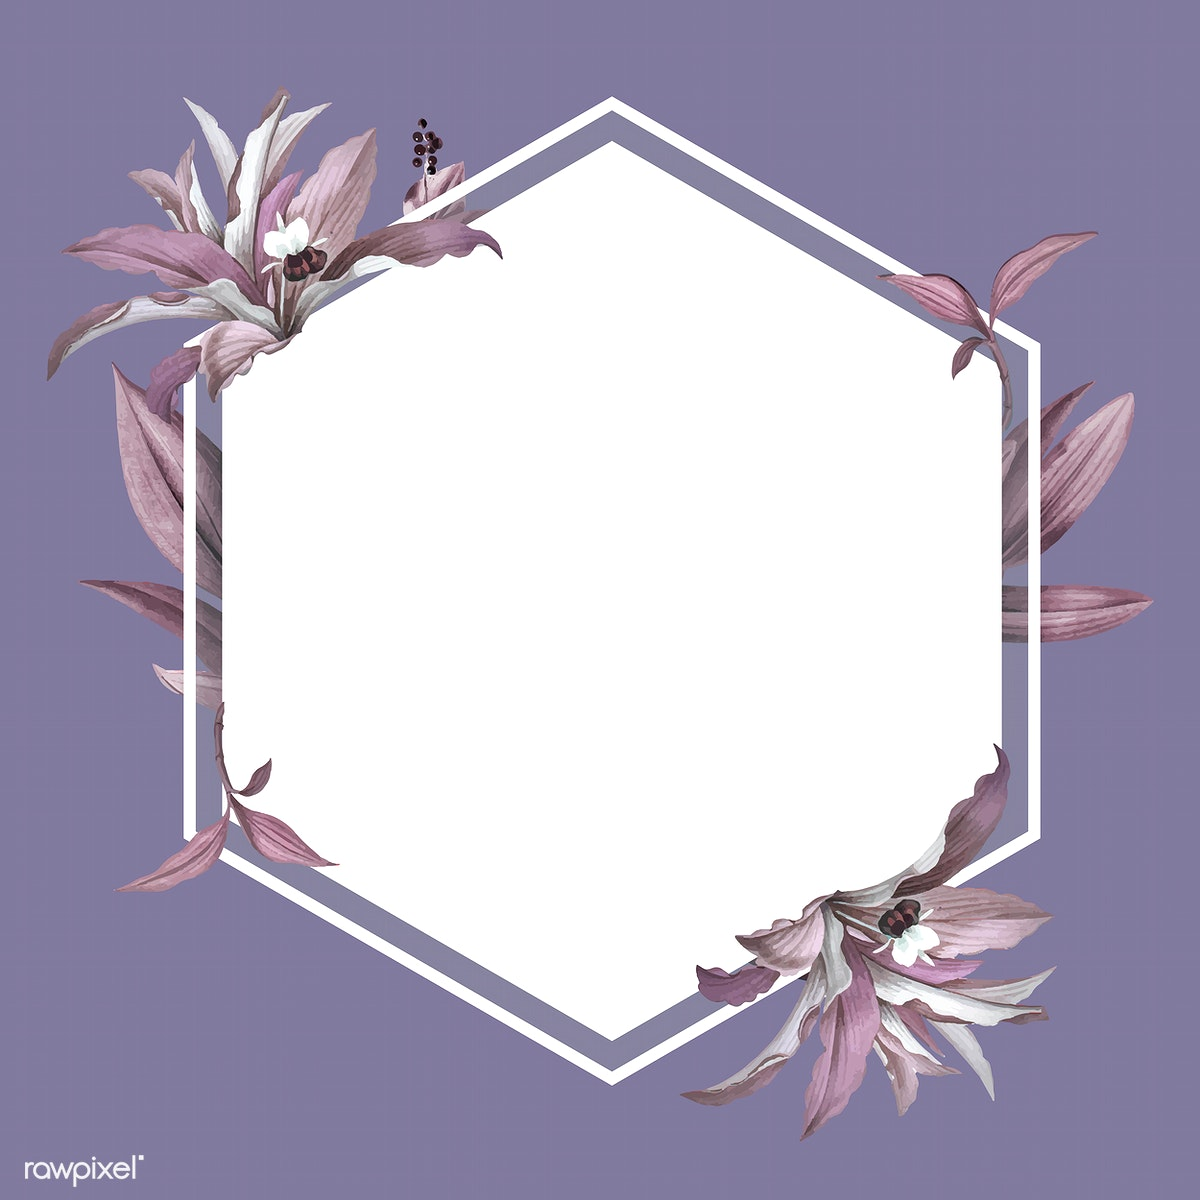 Download premium vector of Empty wedding frame with purple leaves design